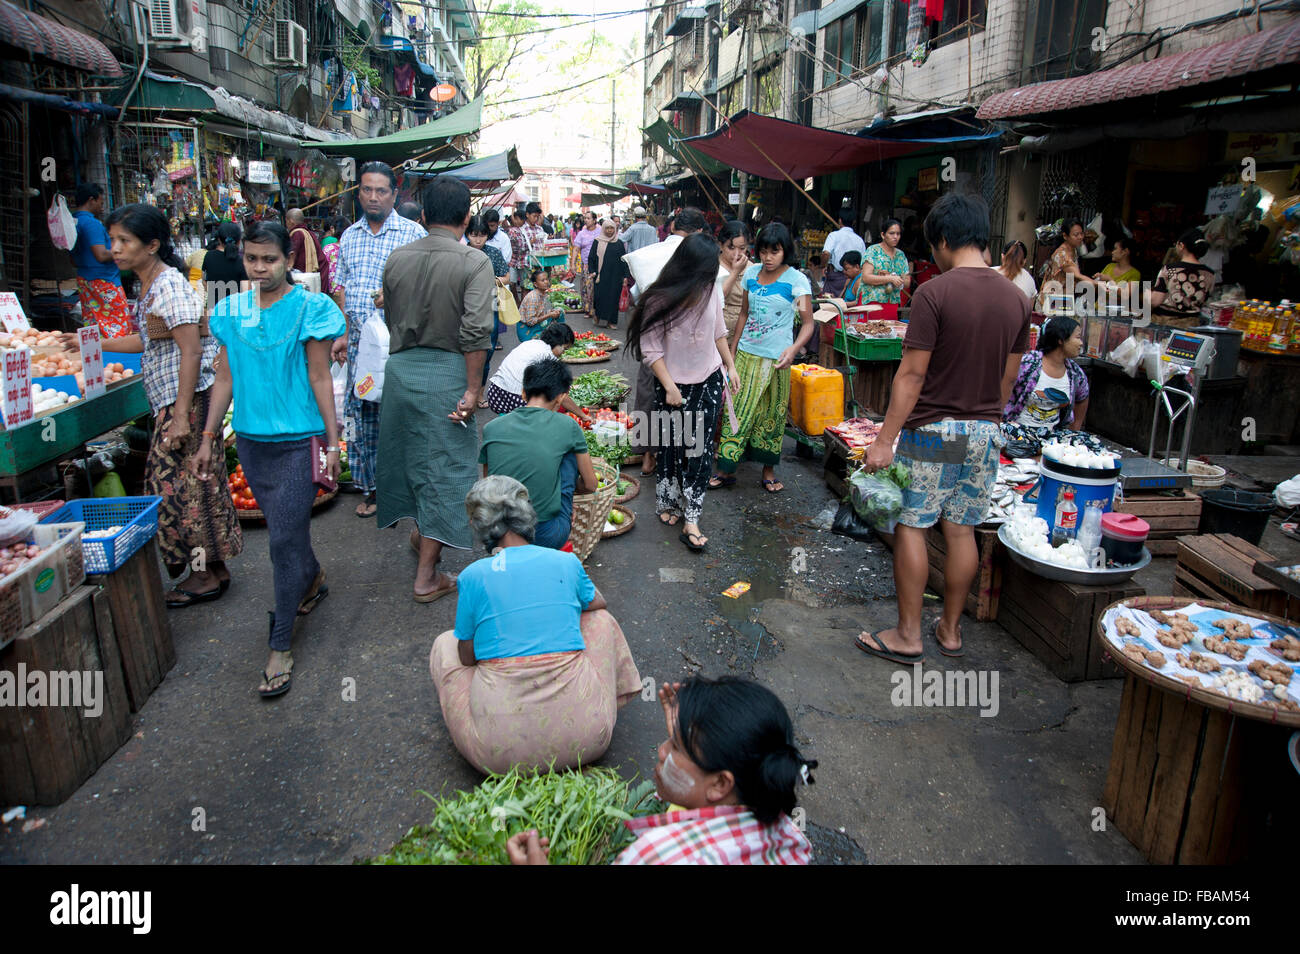 Hindu, Muslim and Buddhist shop side by side on one of Yangon's many fresh food street markets Myanmar - Stock Image